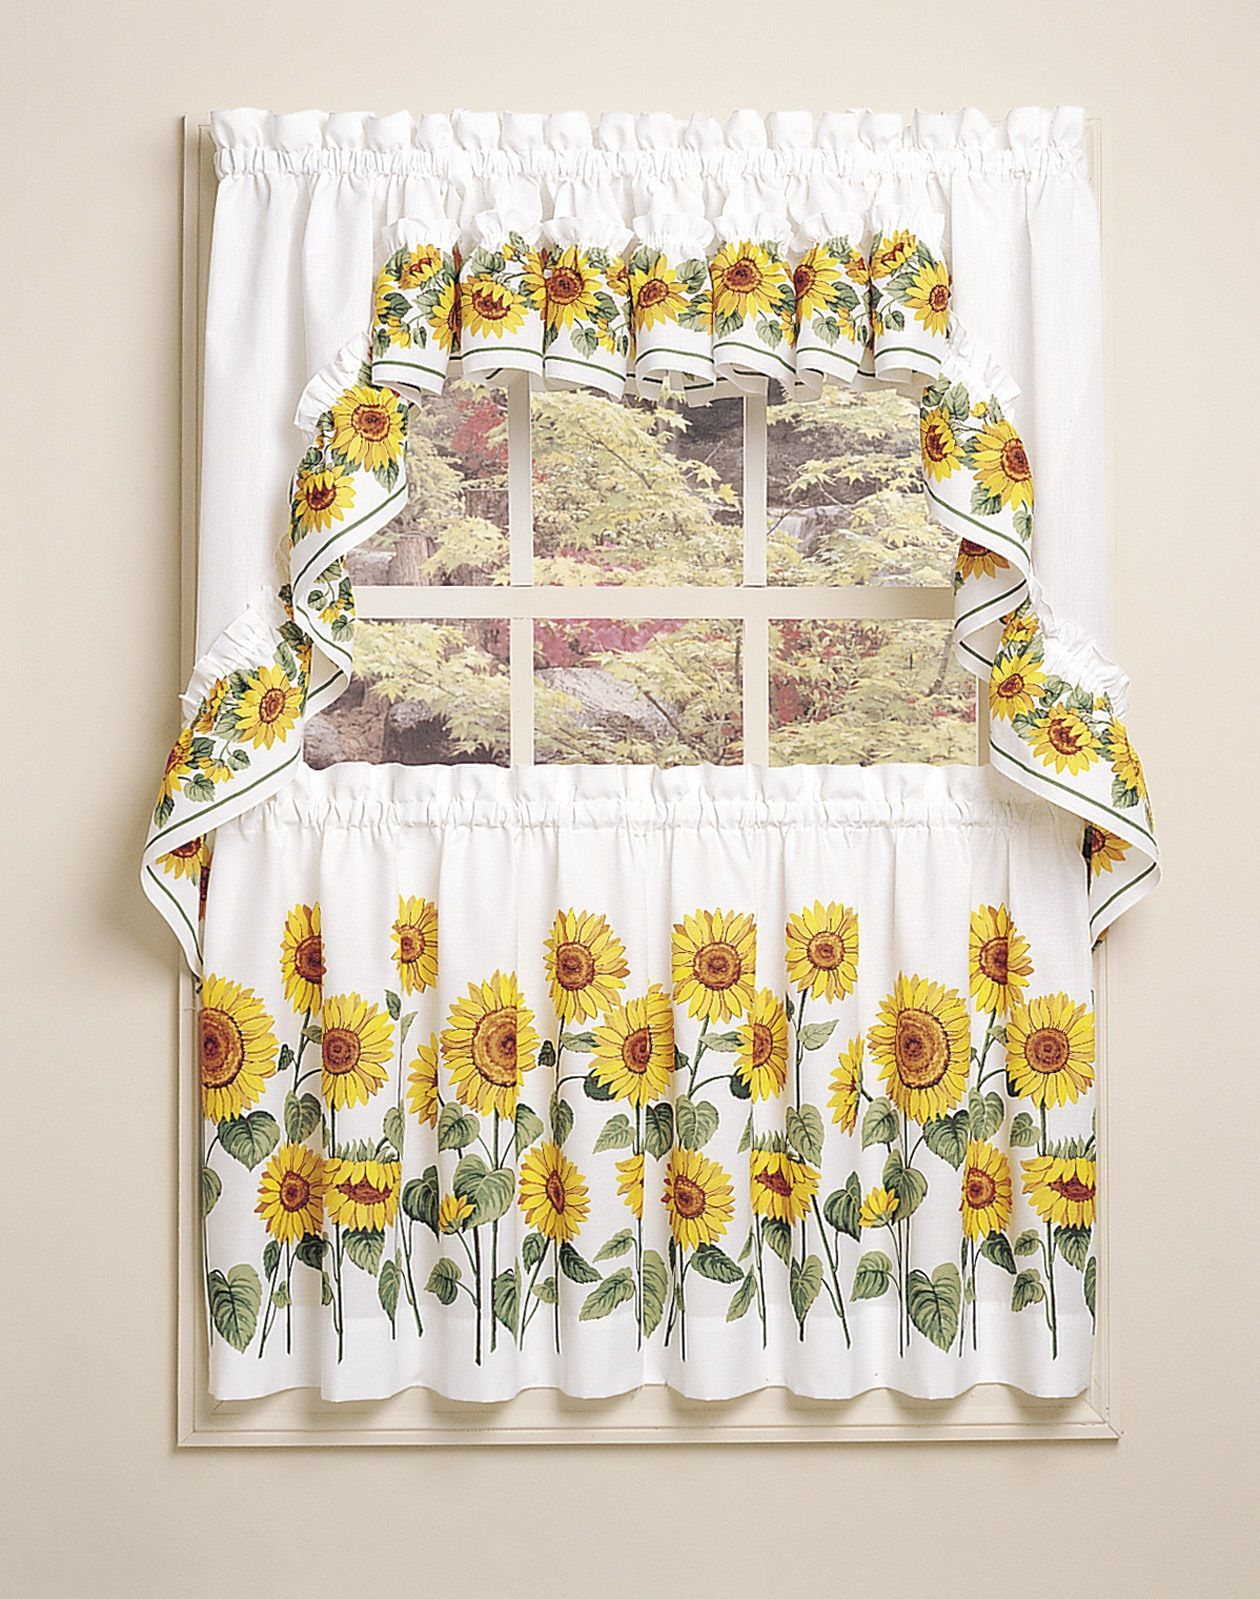 Sunflower design kitchen curtain | sunflower i love | Pinterest ...